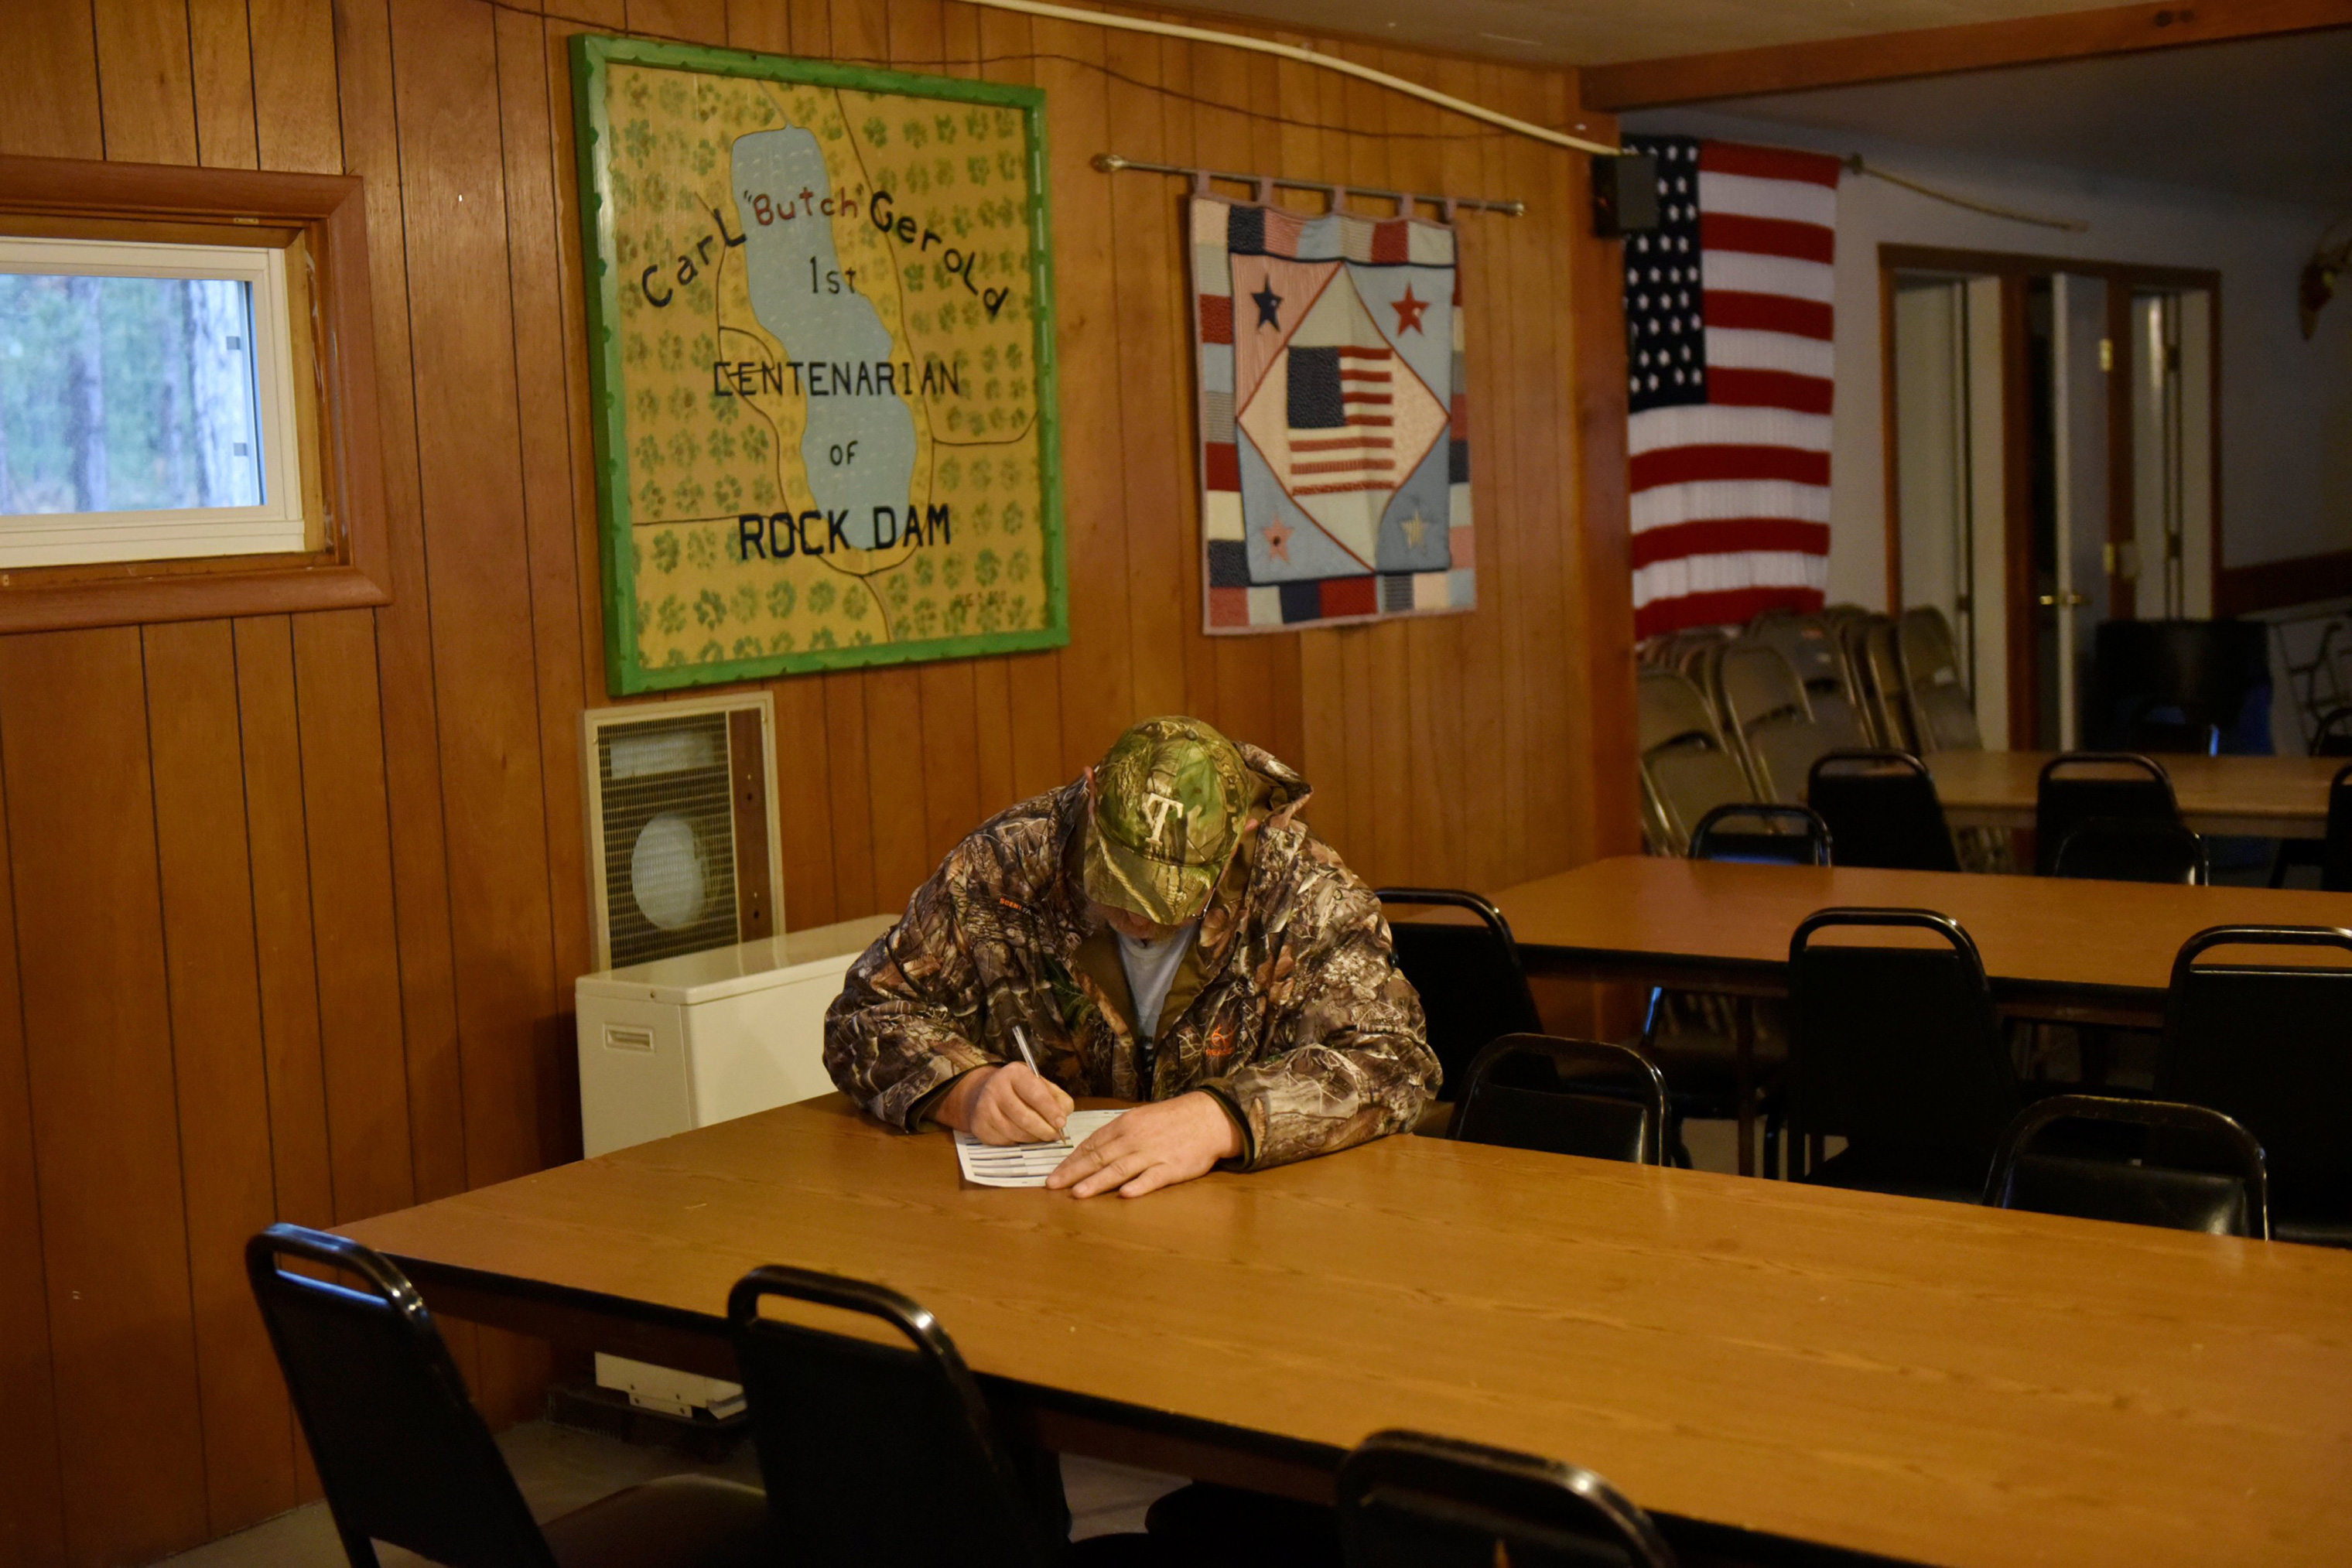 Ivan Ruzic fills out his ballot for the midterm election at the Rock Dam Rod and Gun Club in Foster Township, Wis.